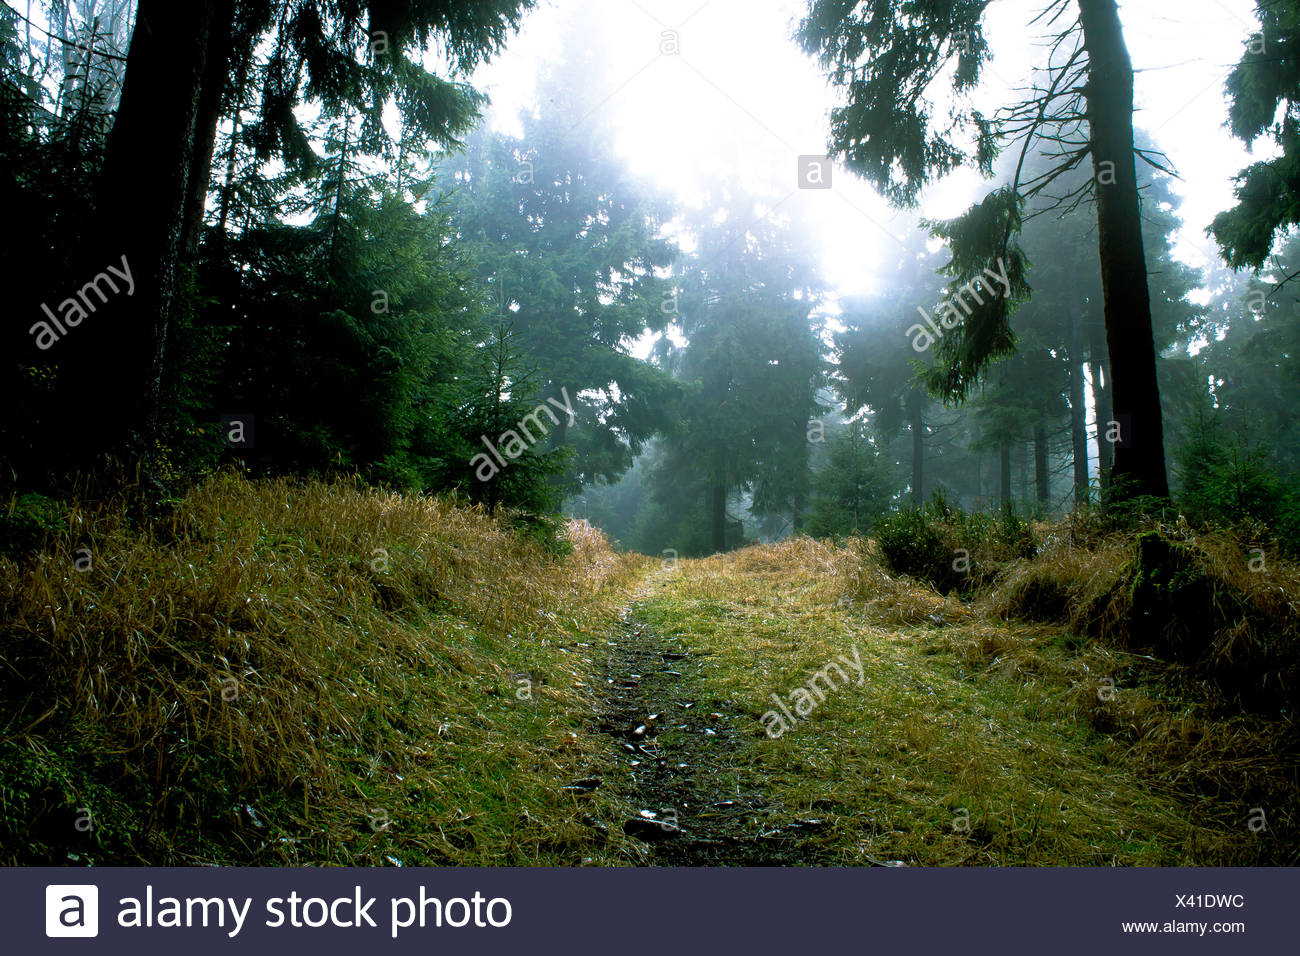 misty forest - Stock Image